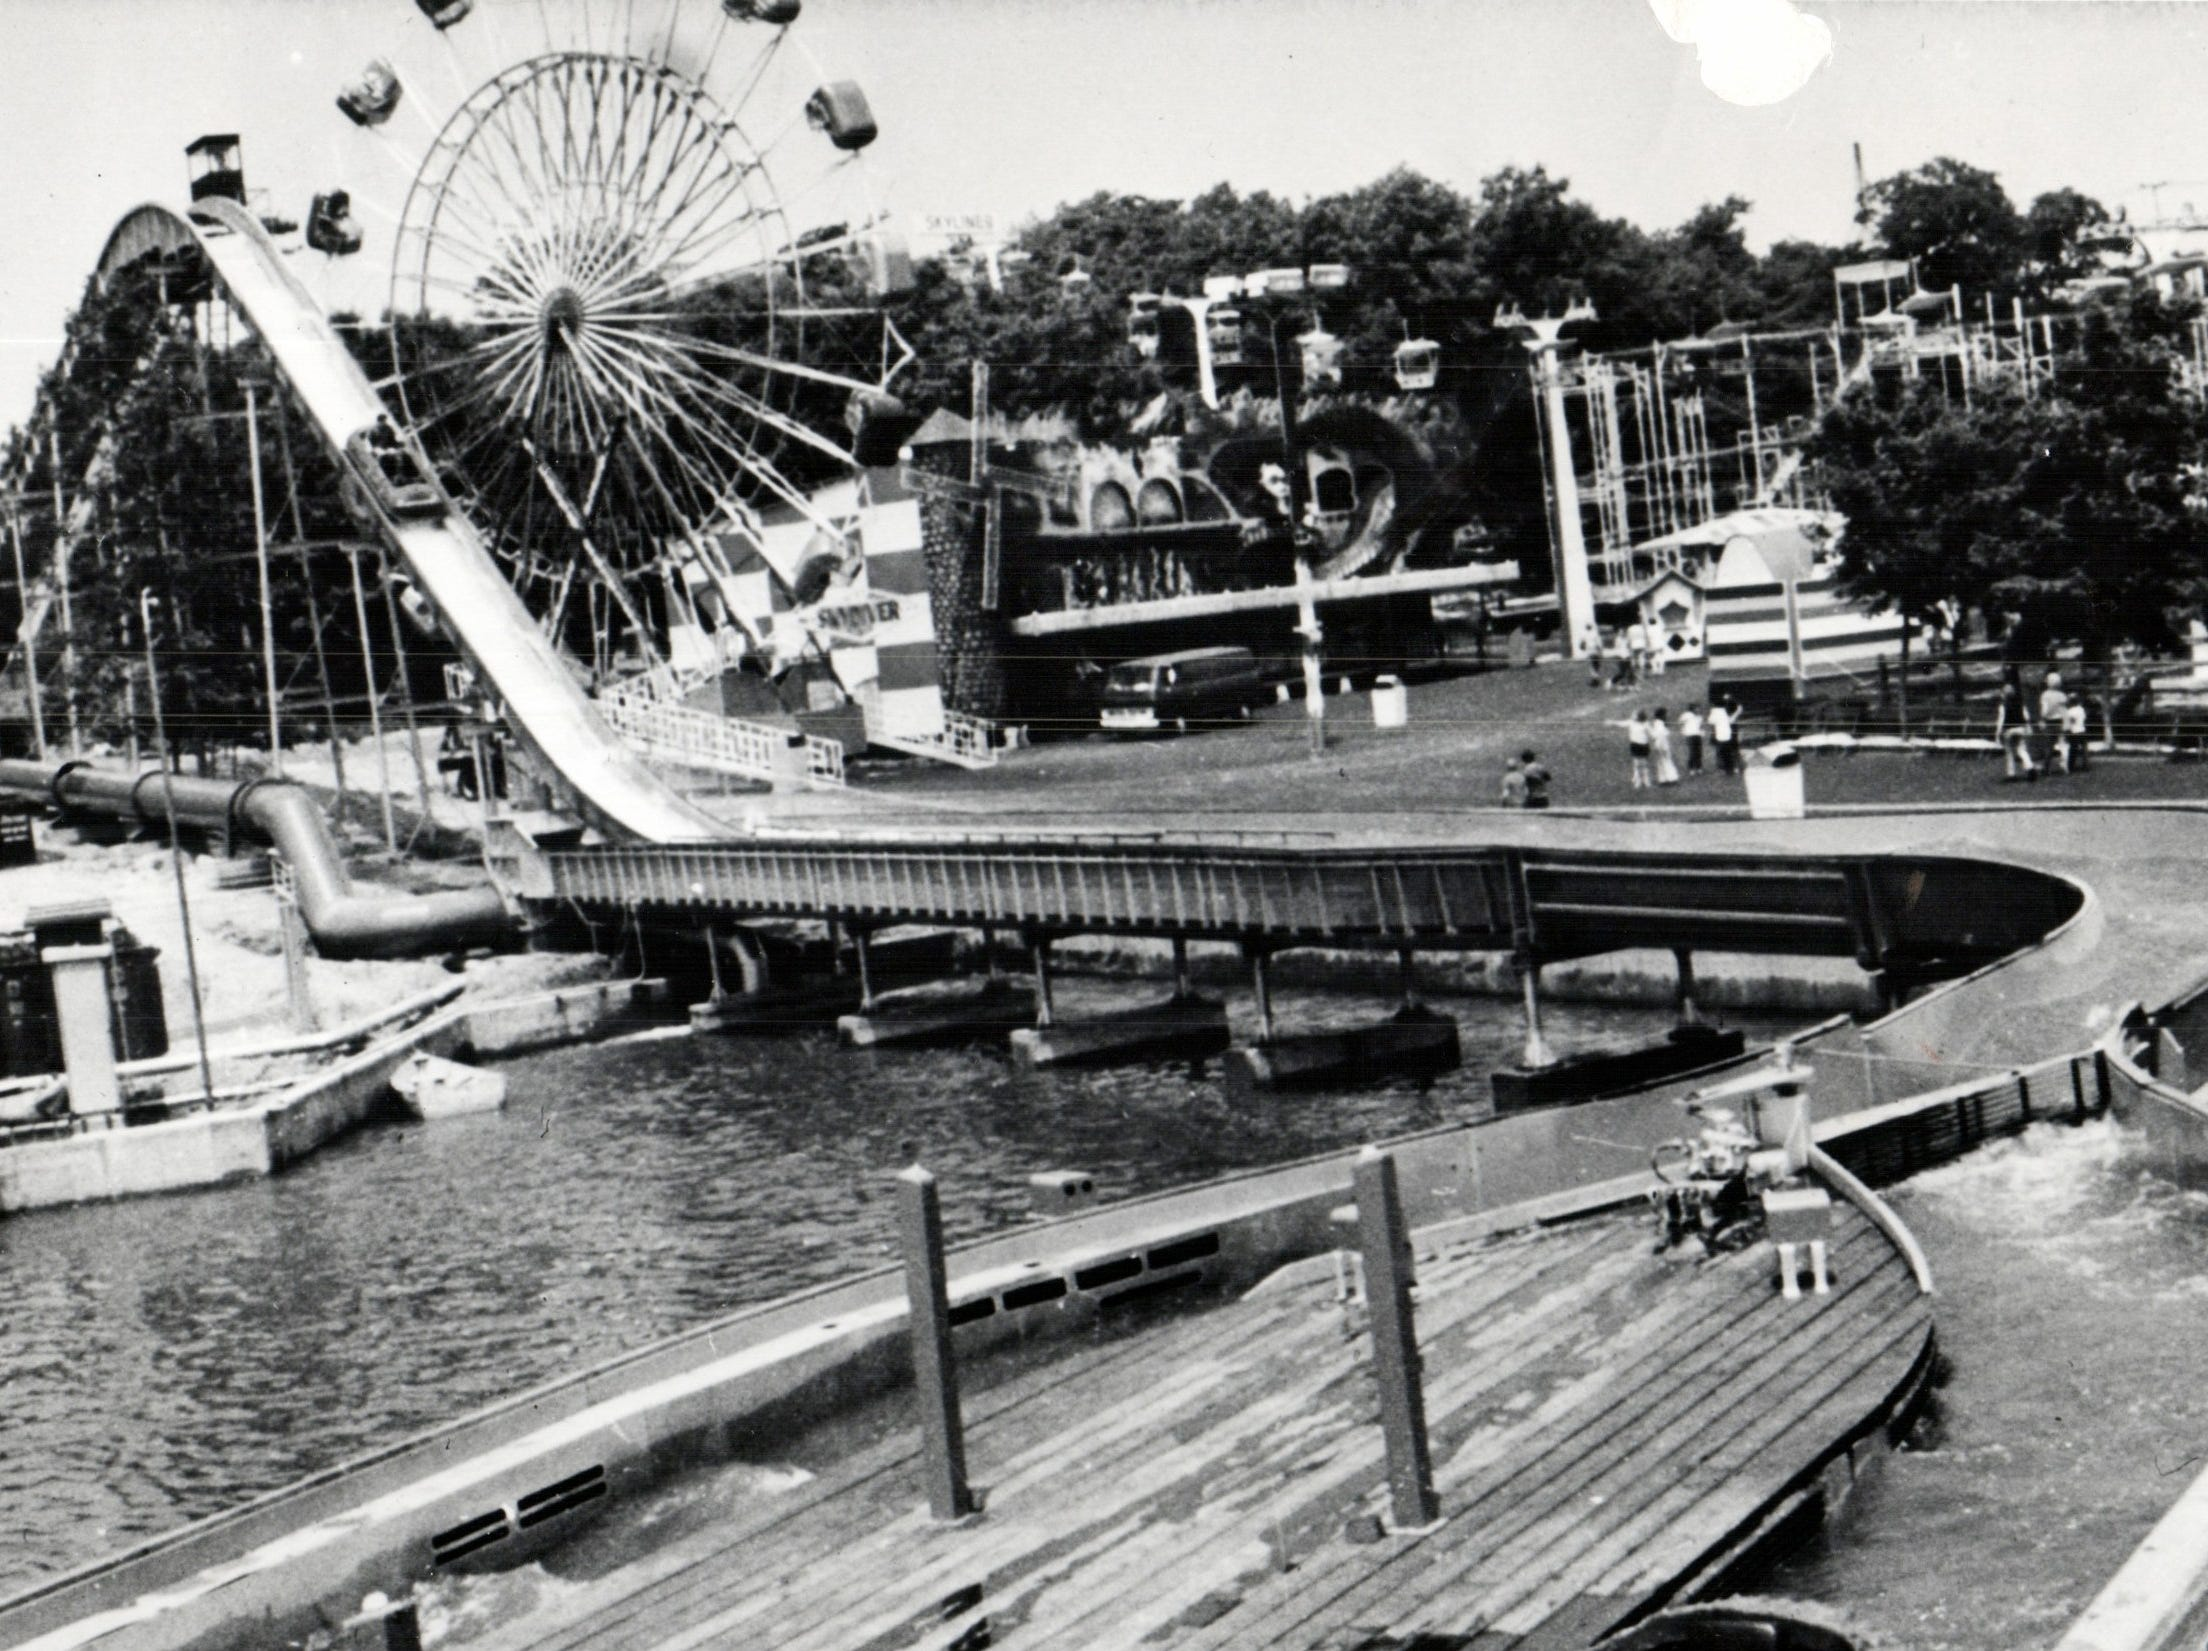 Log flume ride, Enterprise and other rides on Boblo Island.